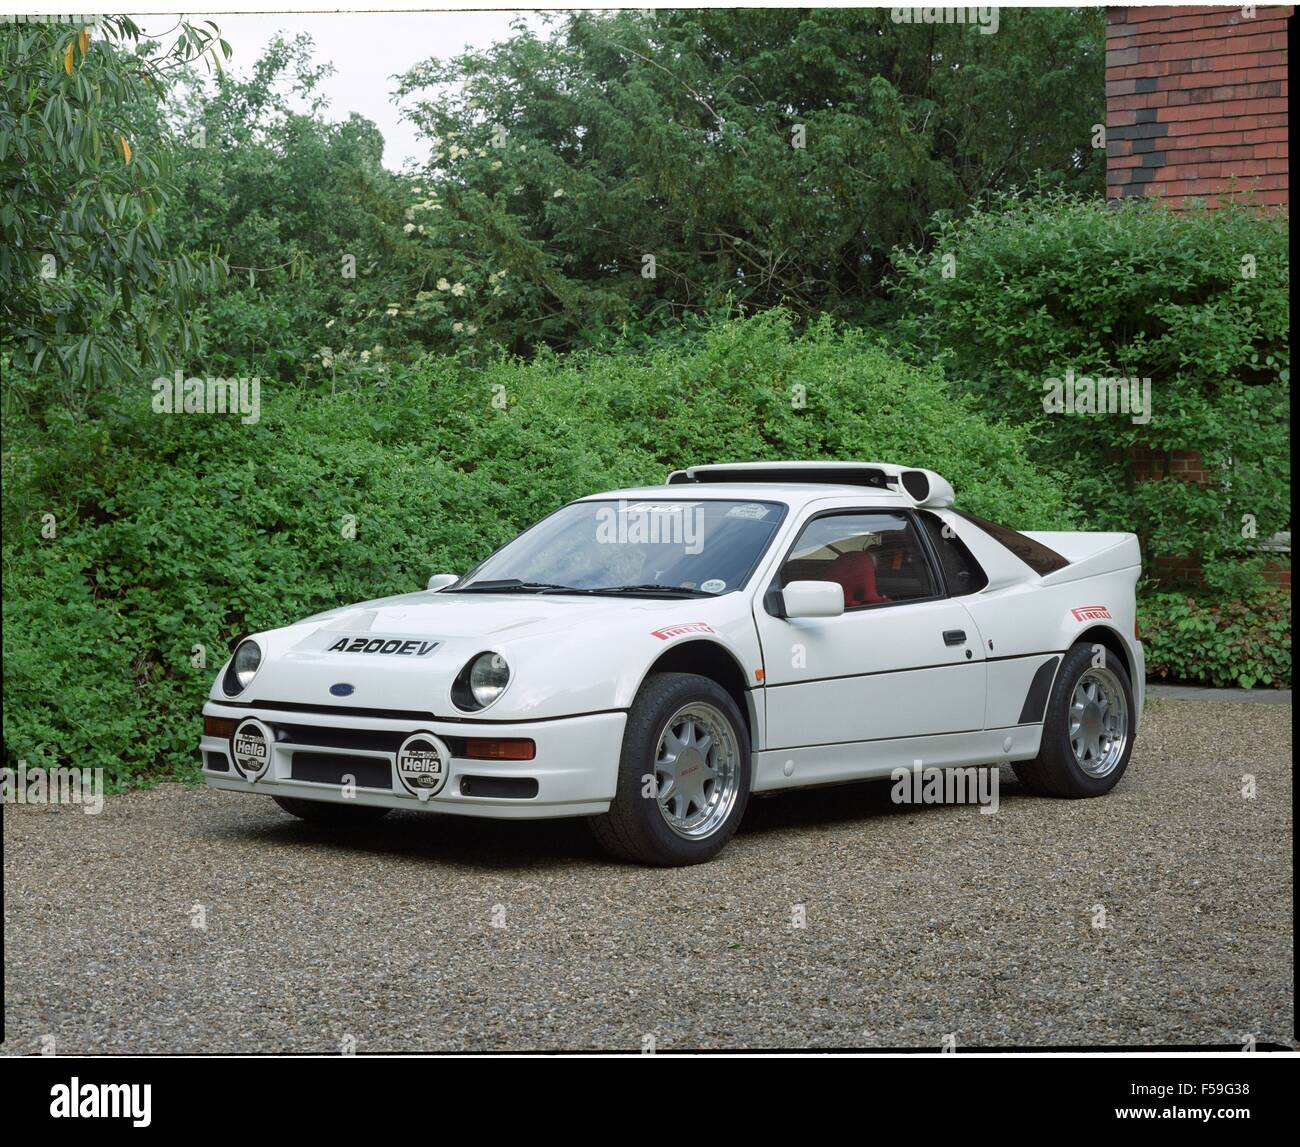 Ford RS200 / RS 200 Road Car In Diamond White   Mid Engined Sports Car  1980s   Showing Car Front And Side On Countryside Setting